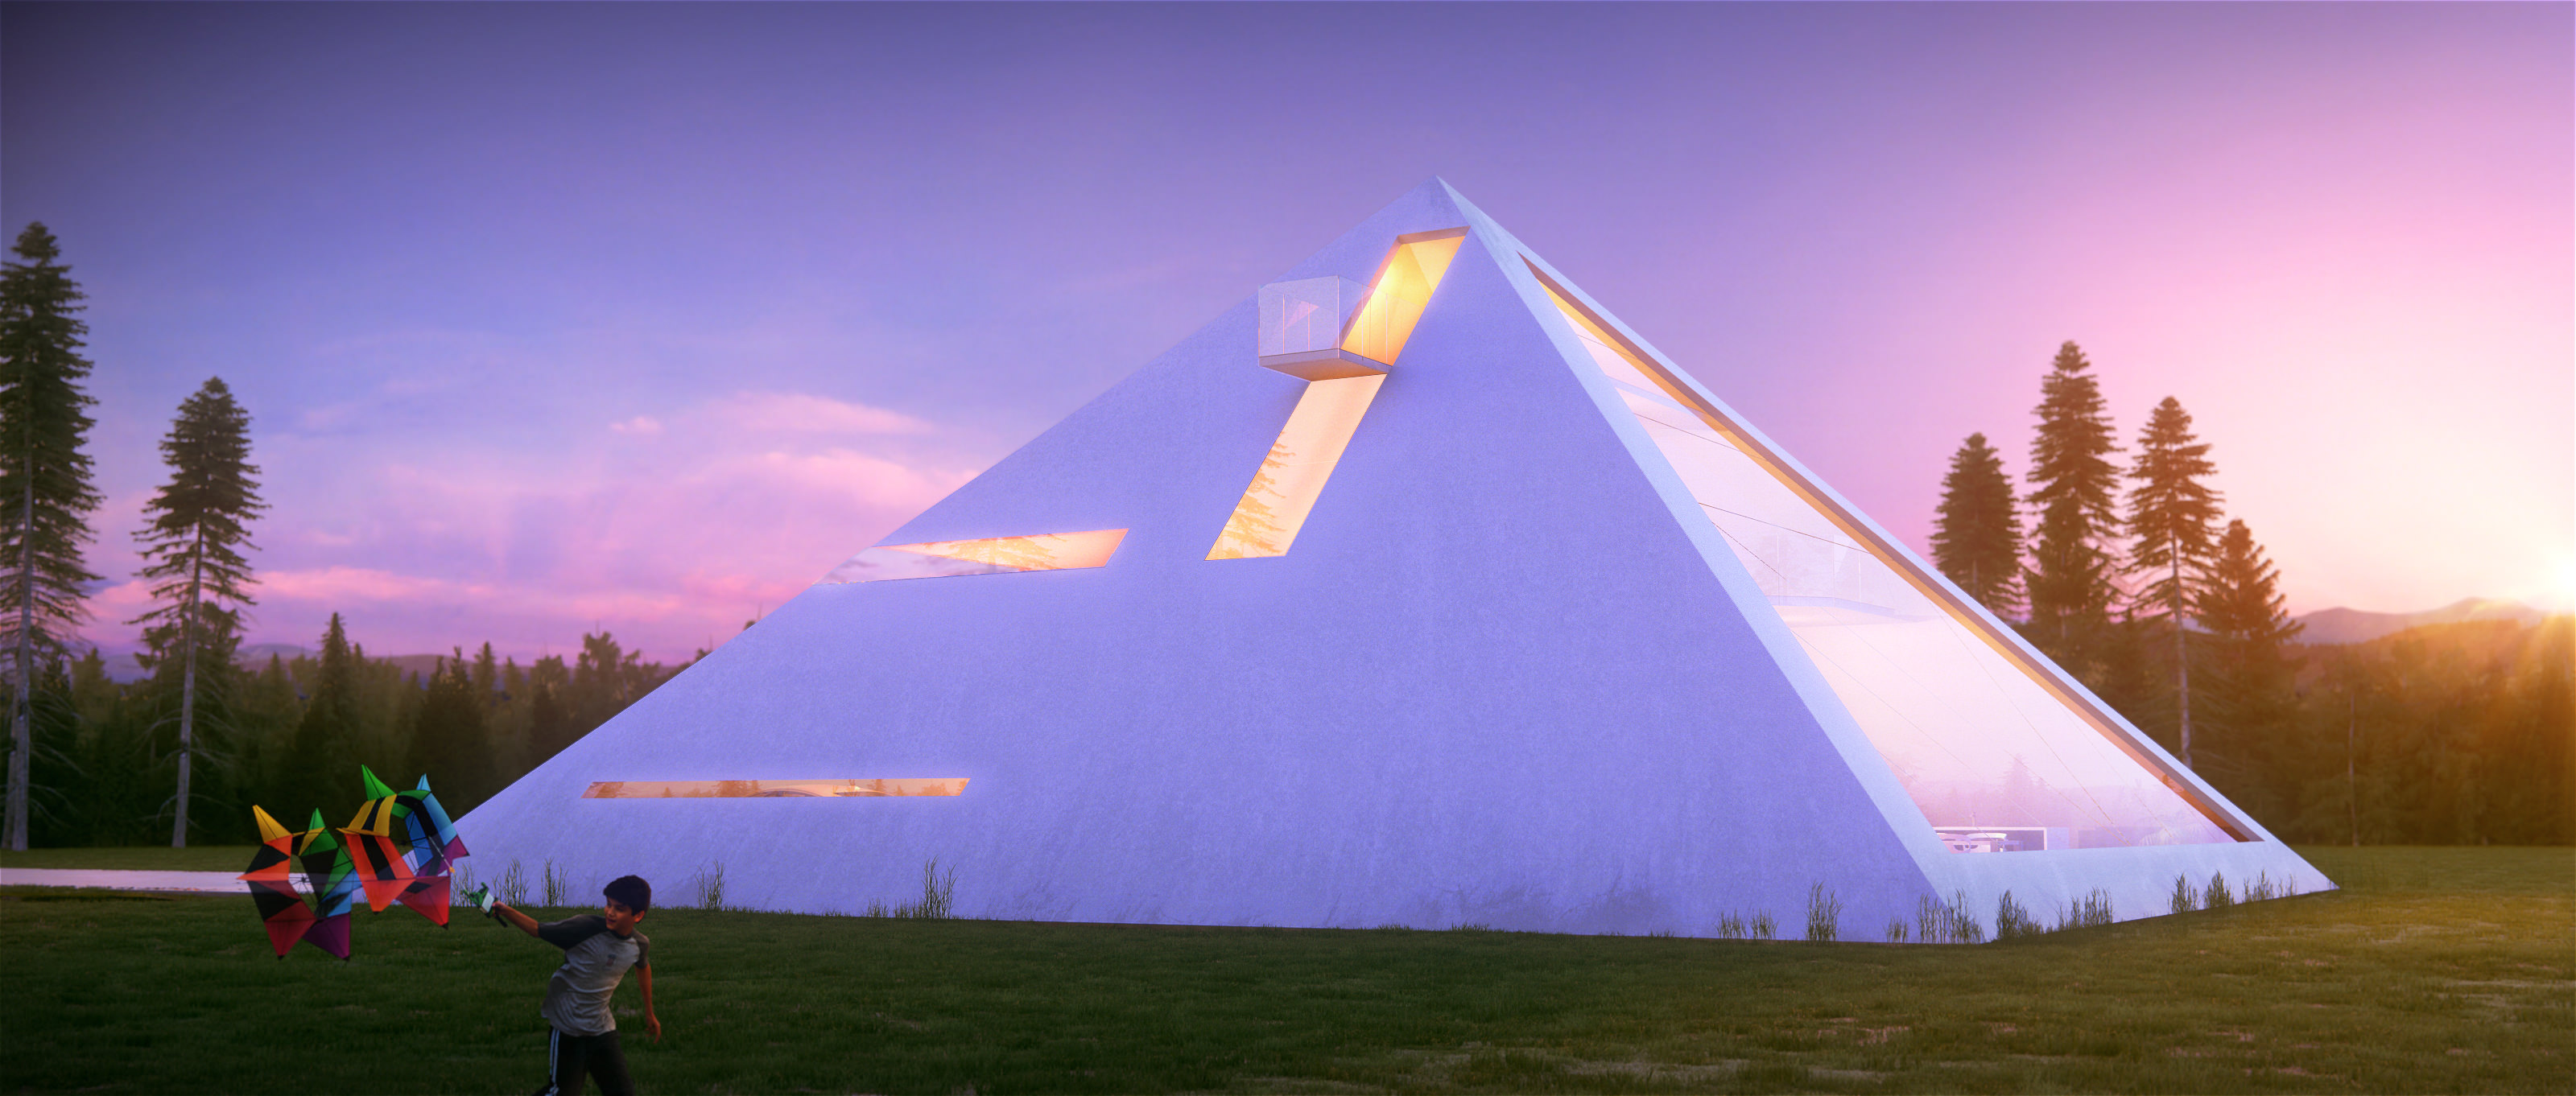 Pyramid House Plans Pyramid House An Architectral Visualization By Juan Carlos